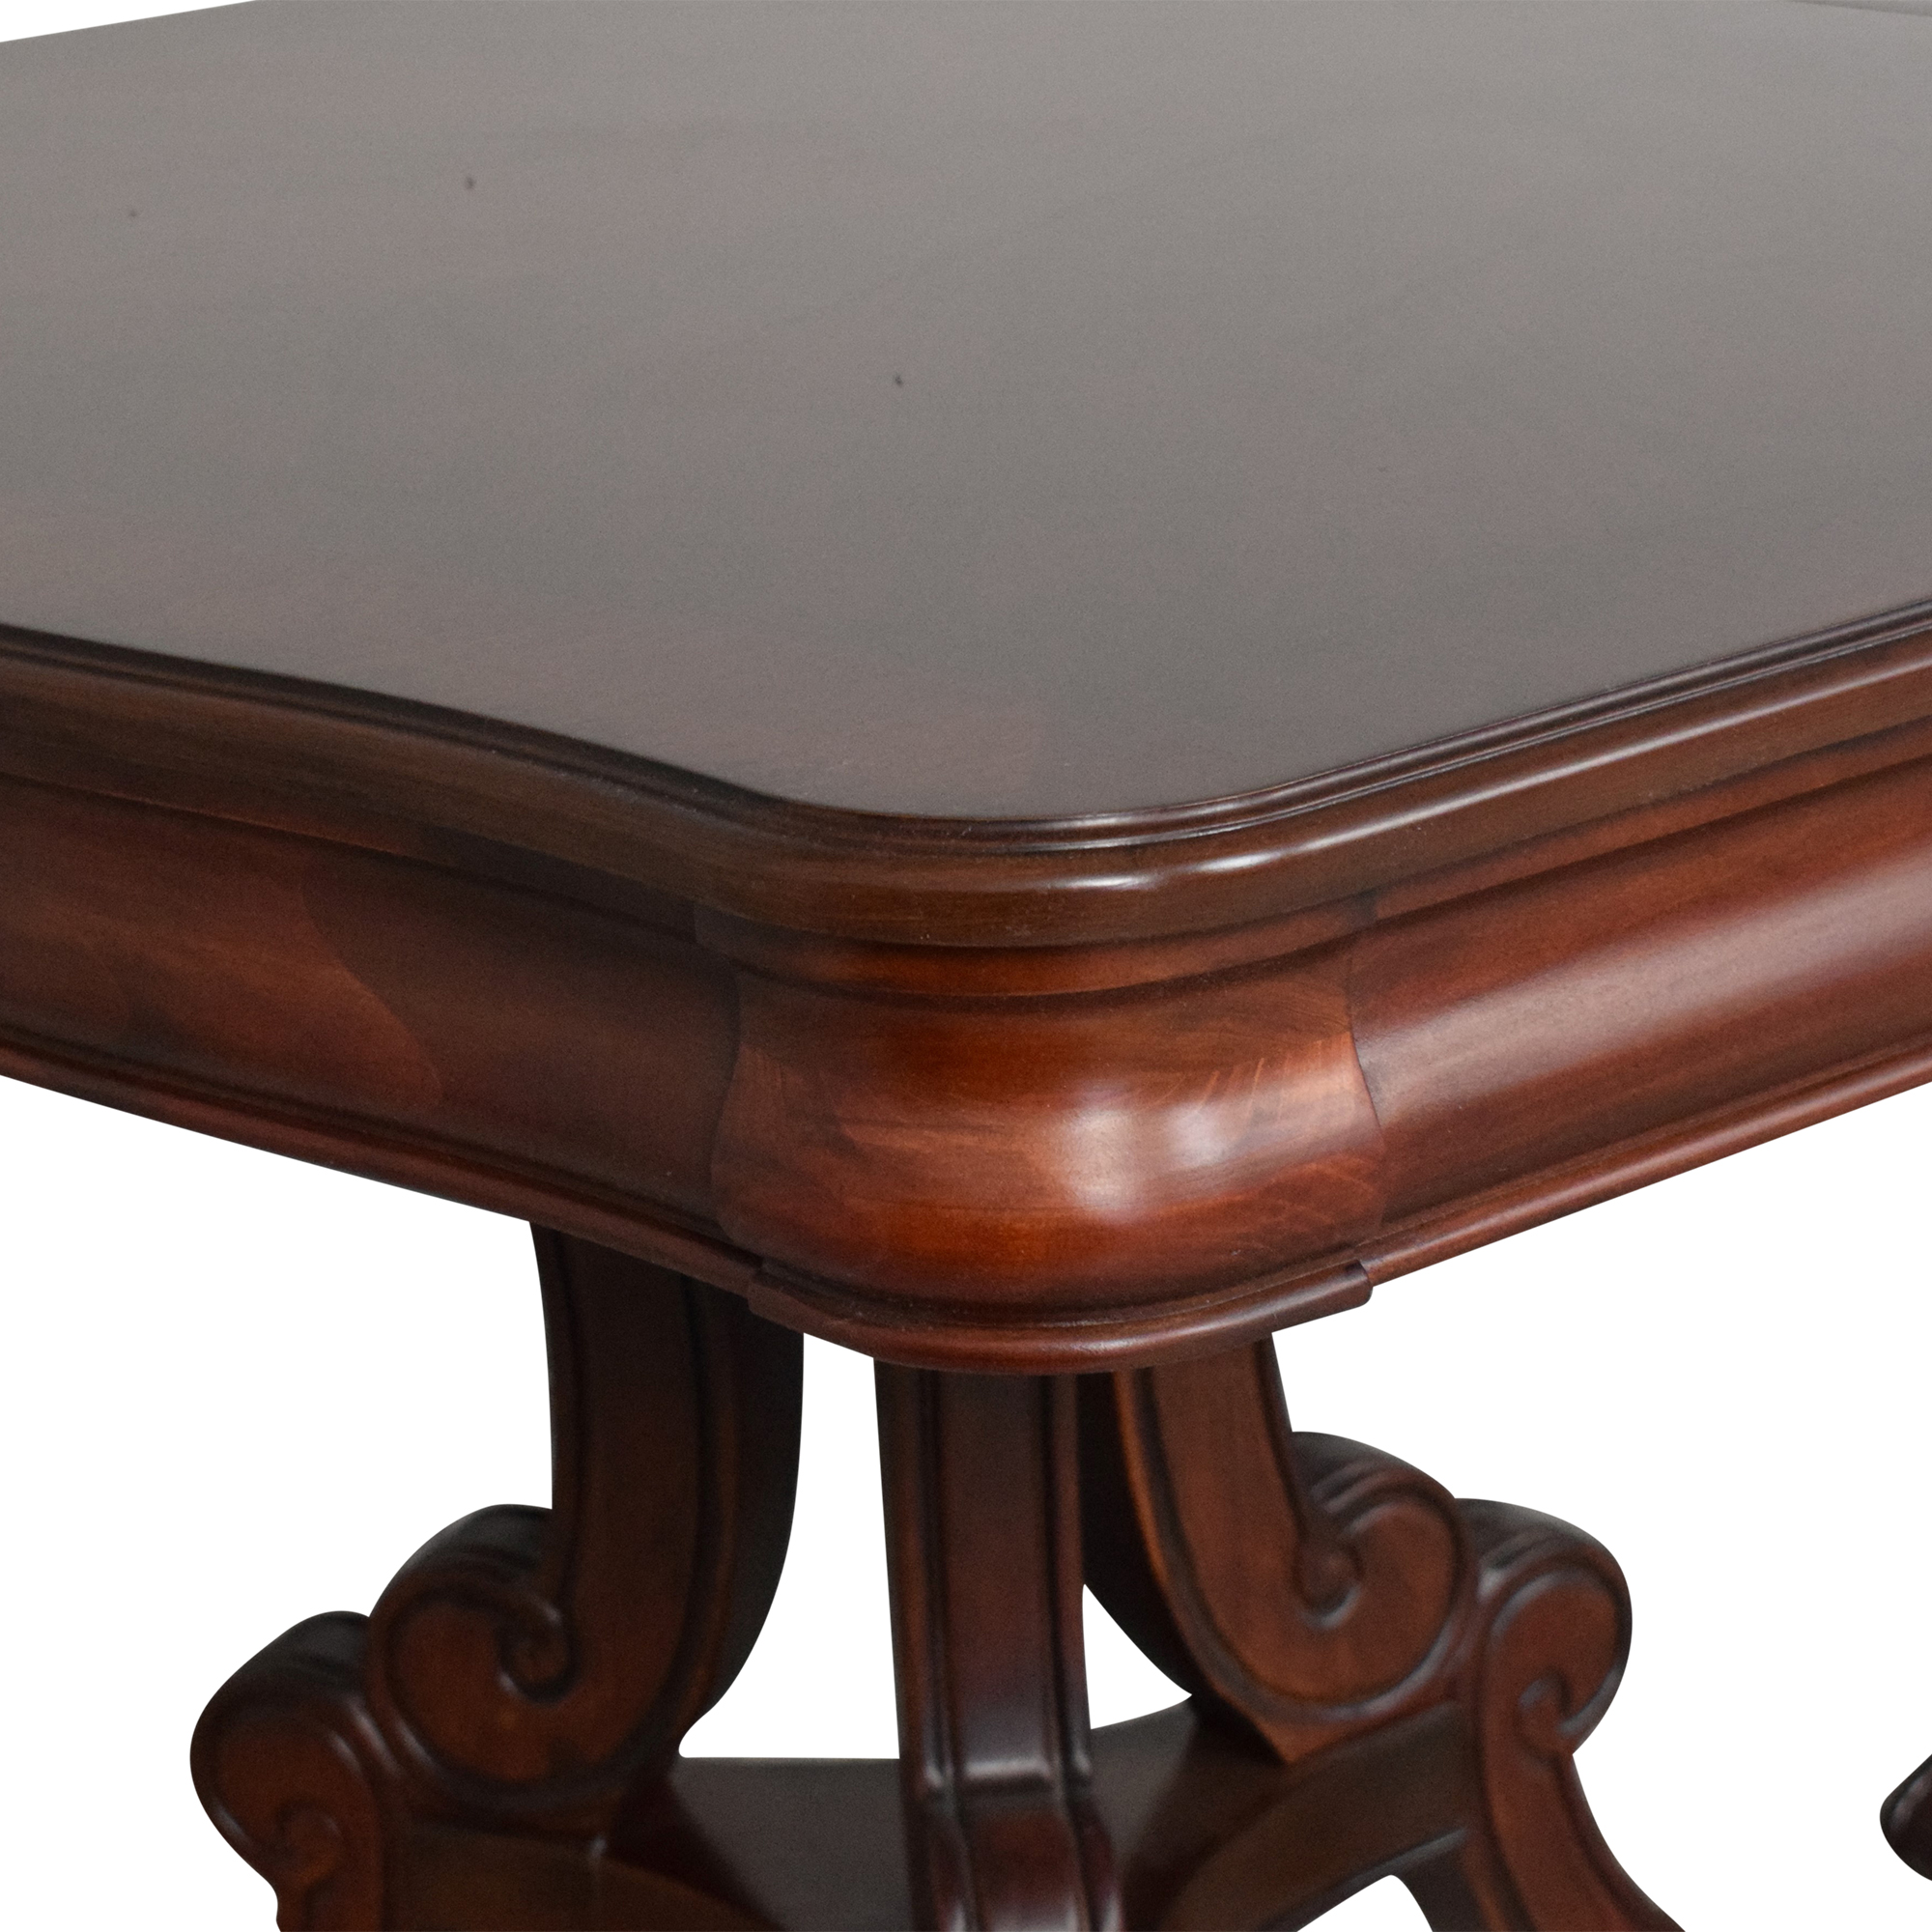 buy Raymour & Flanigan Extendable Dining Table Raymour & Flanigan Dinner Tables